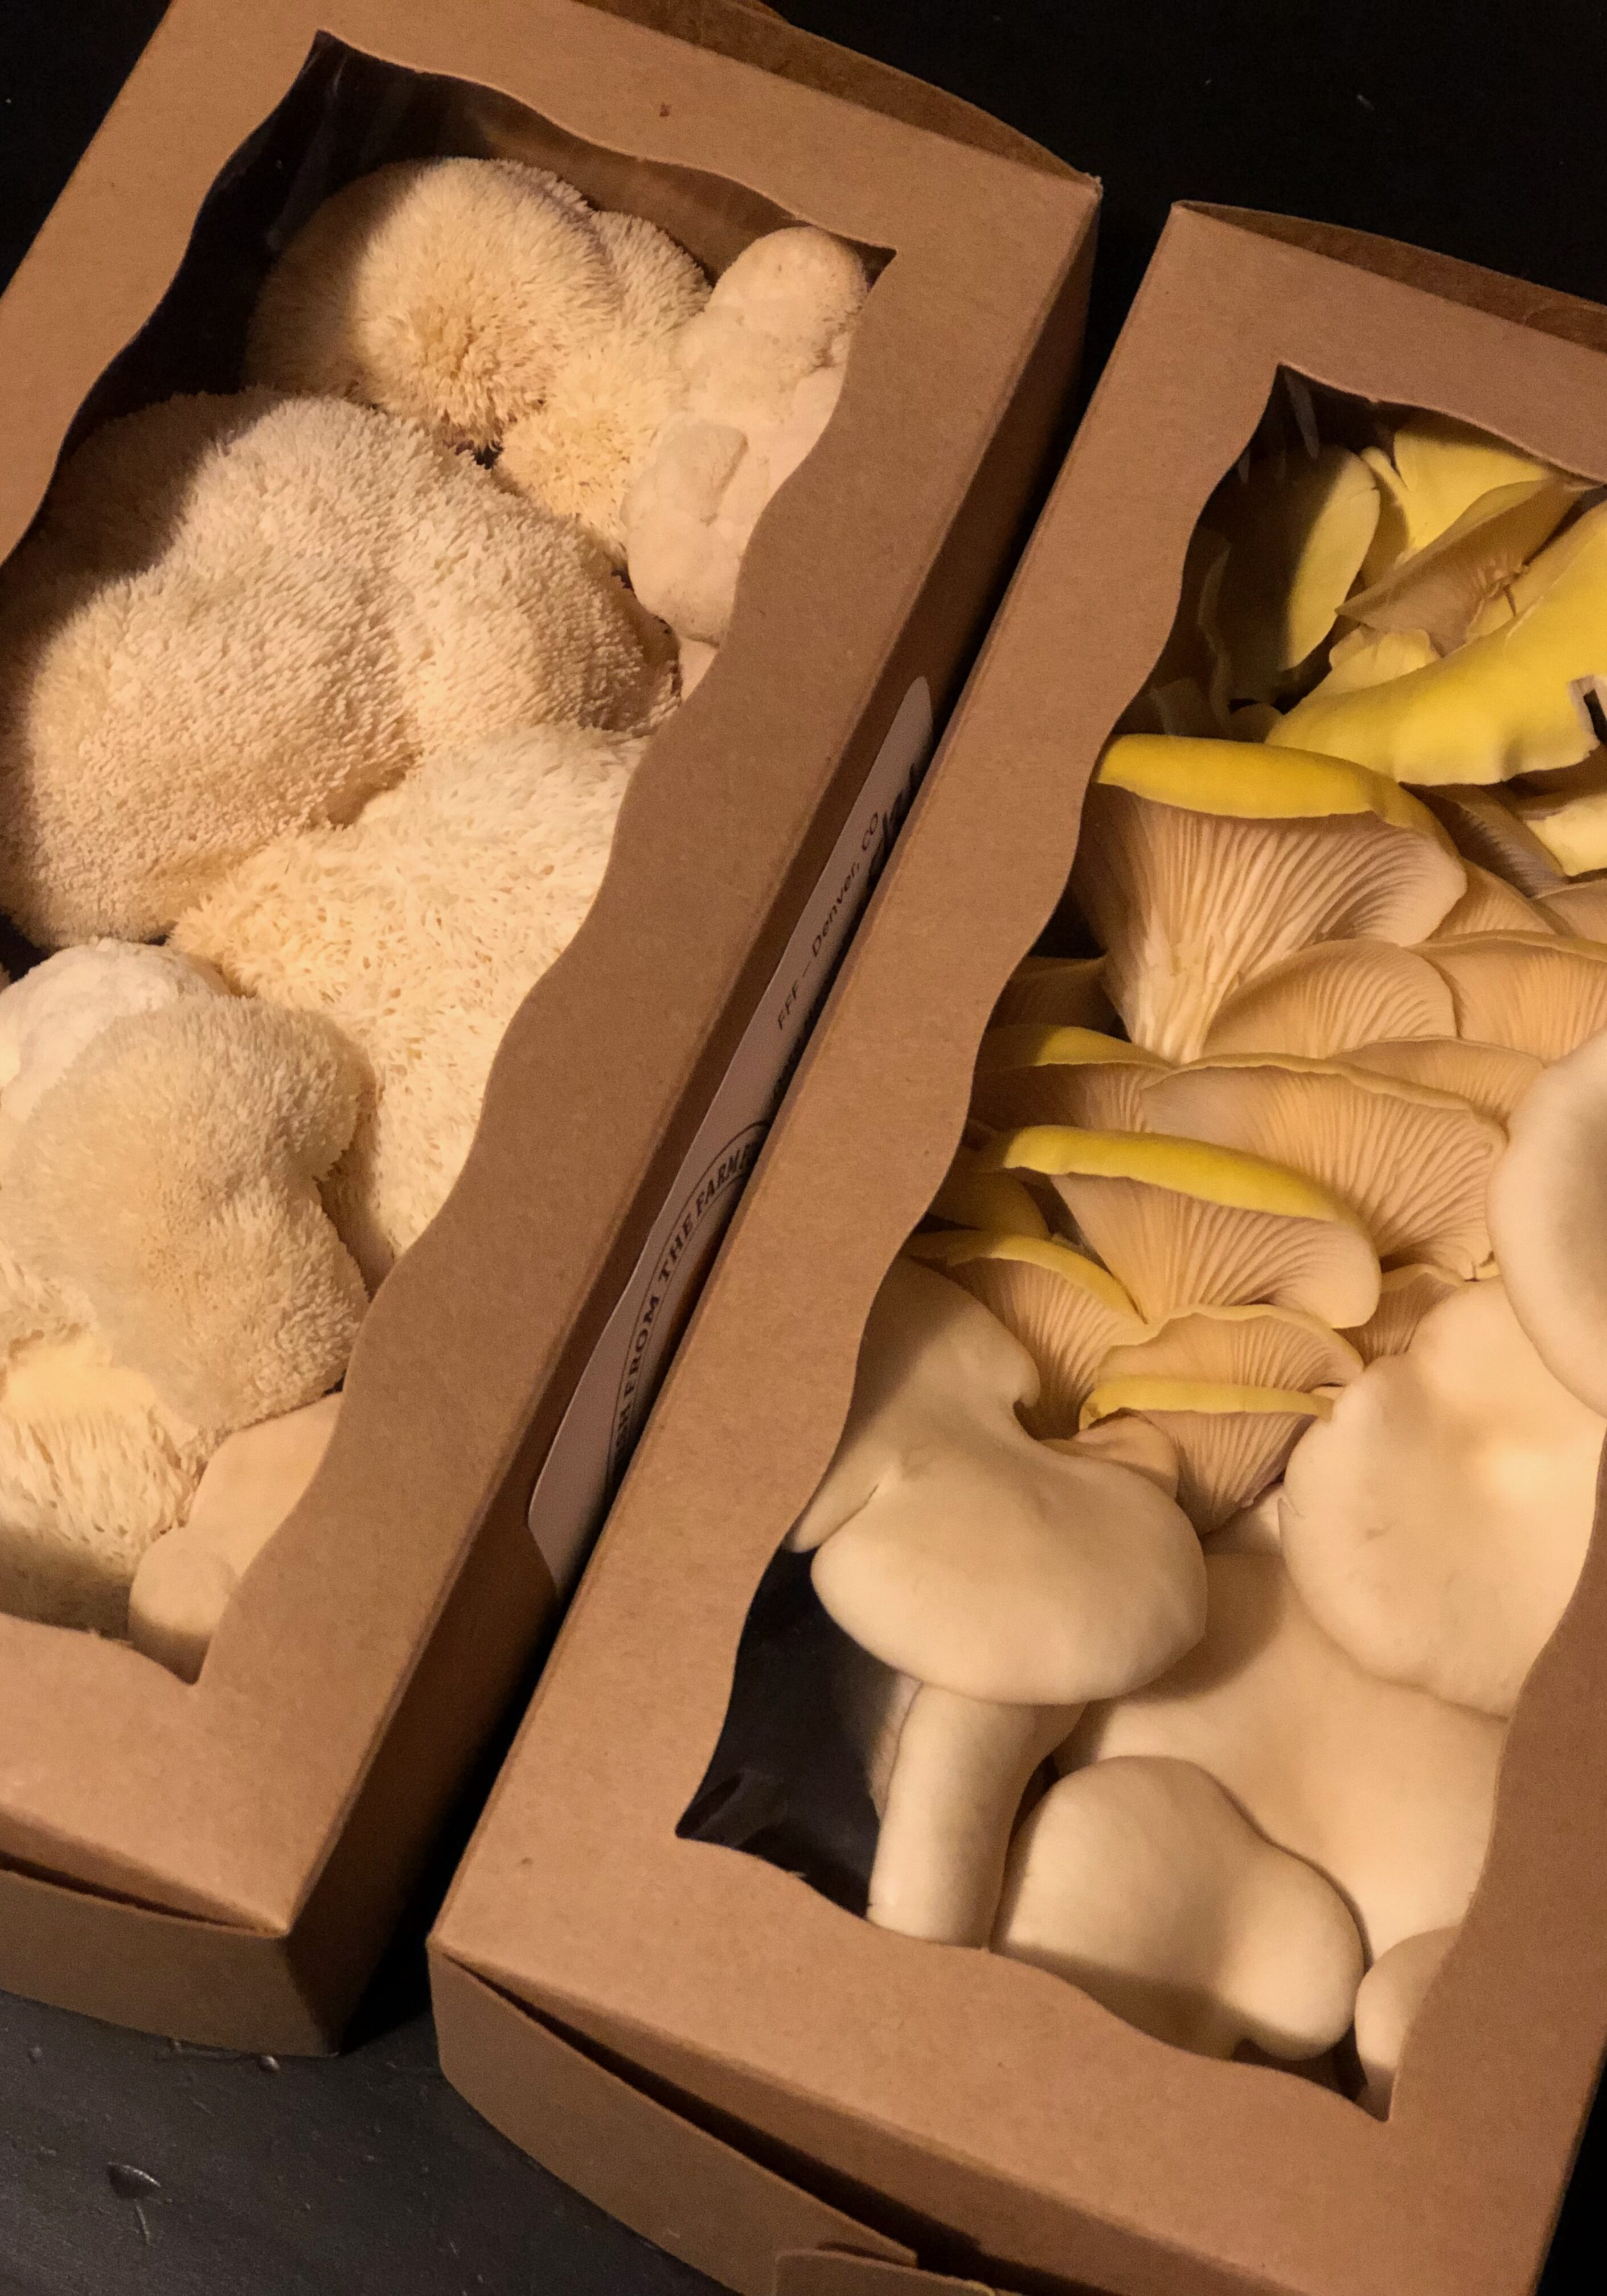 Oyster mushrooms and lIons mane mushrooms fresh from the farm fungi